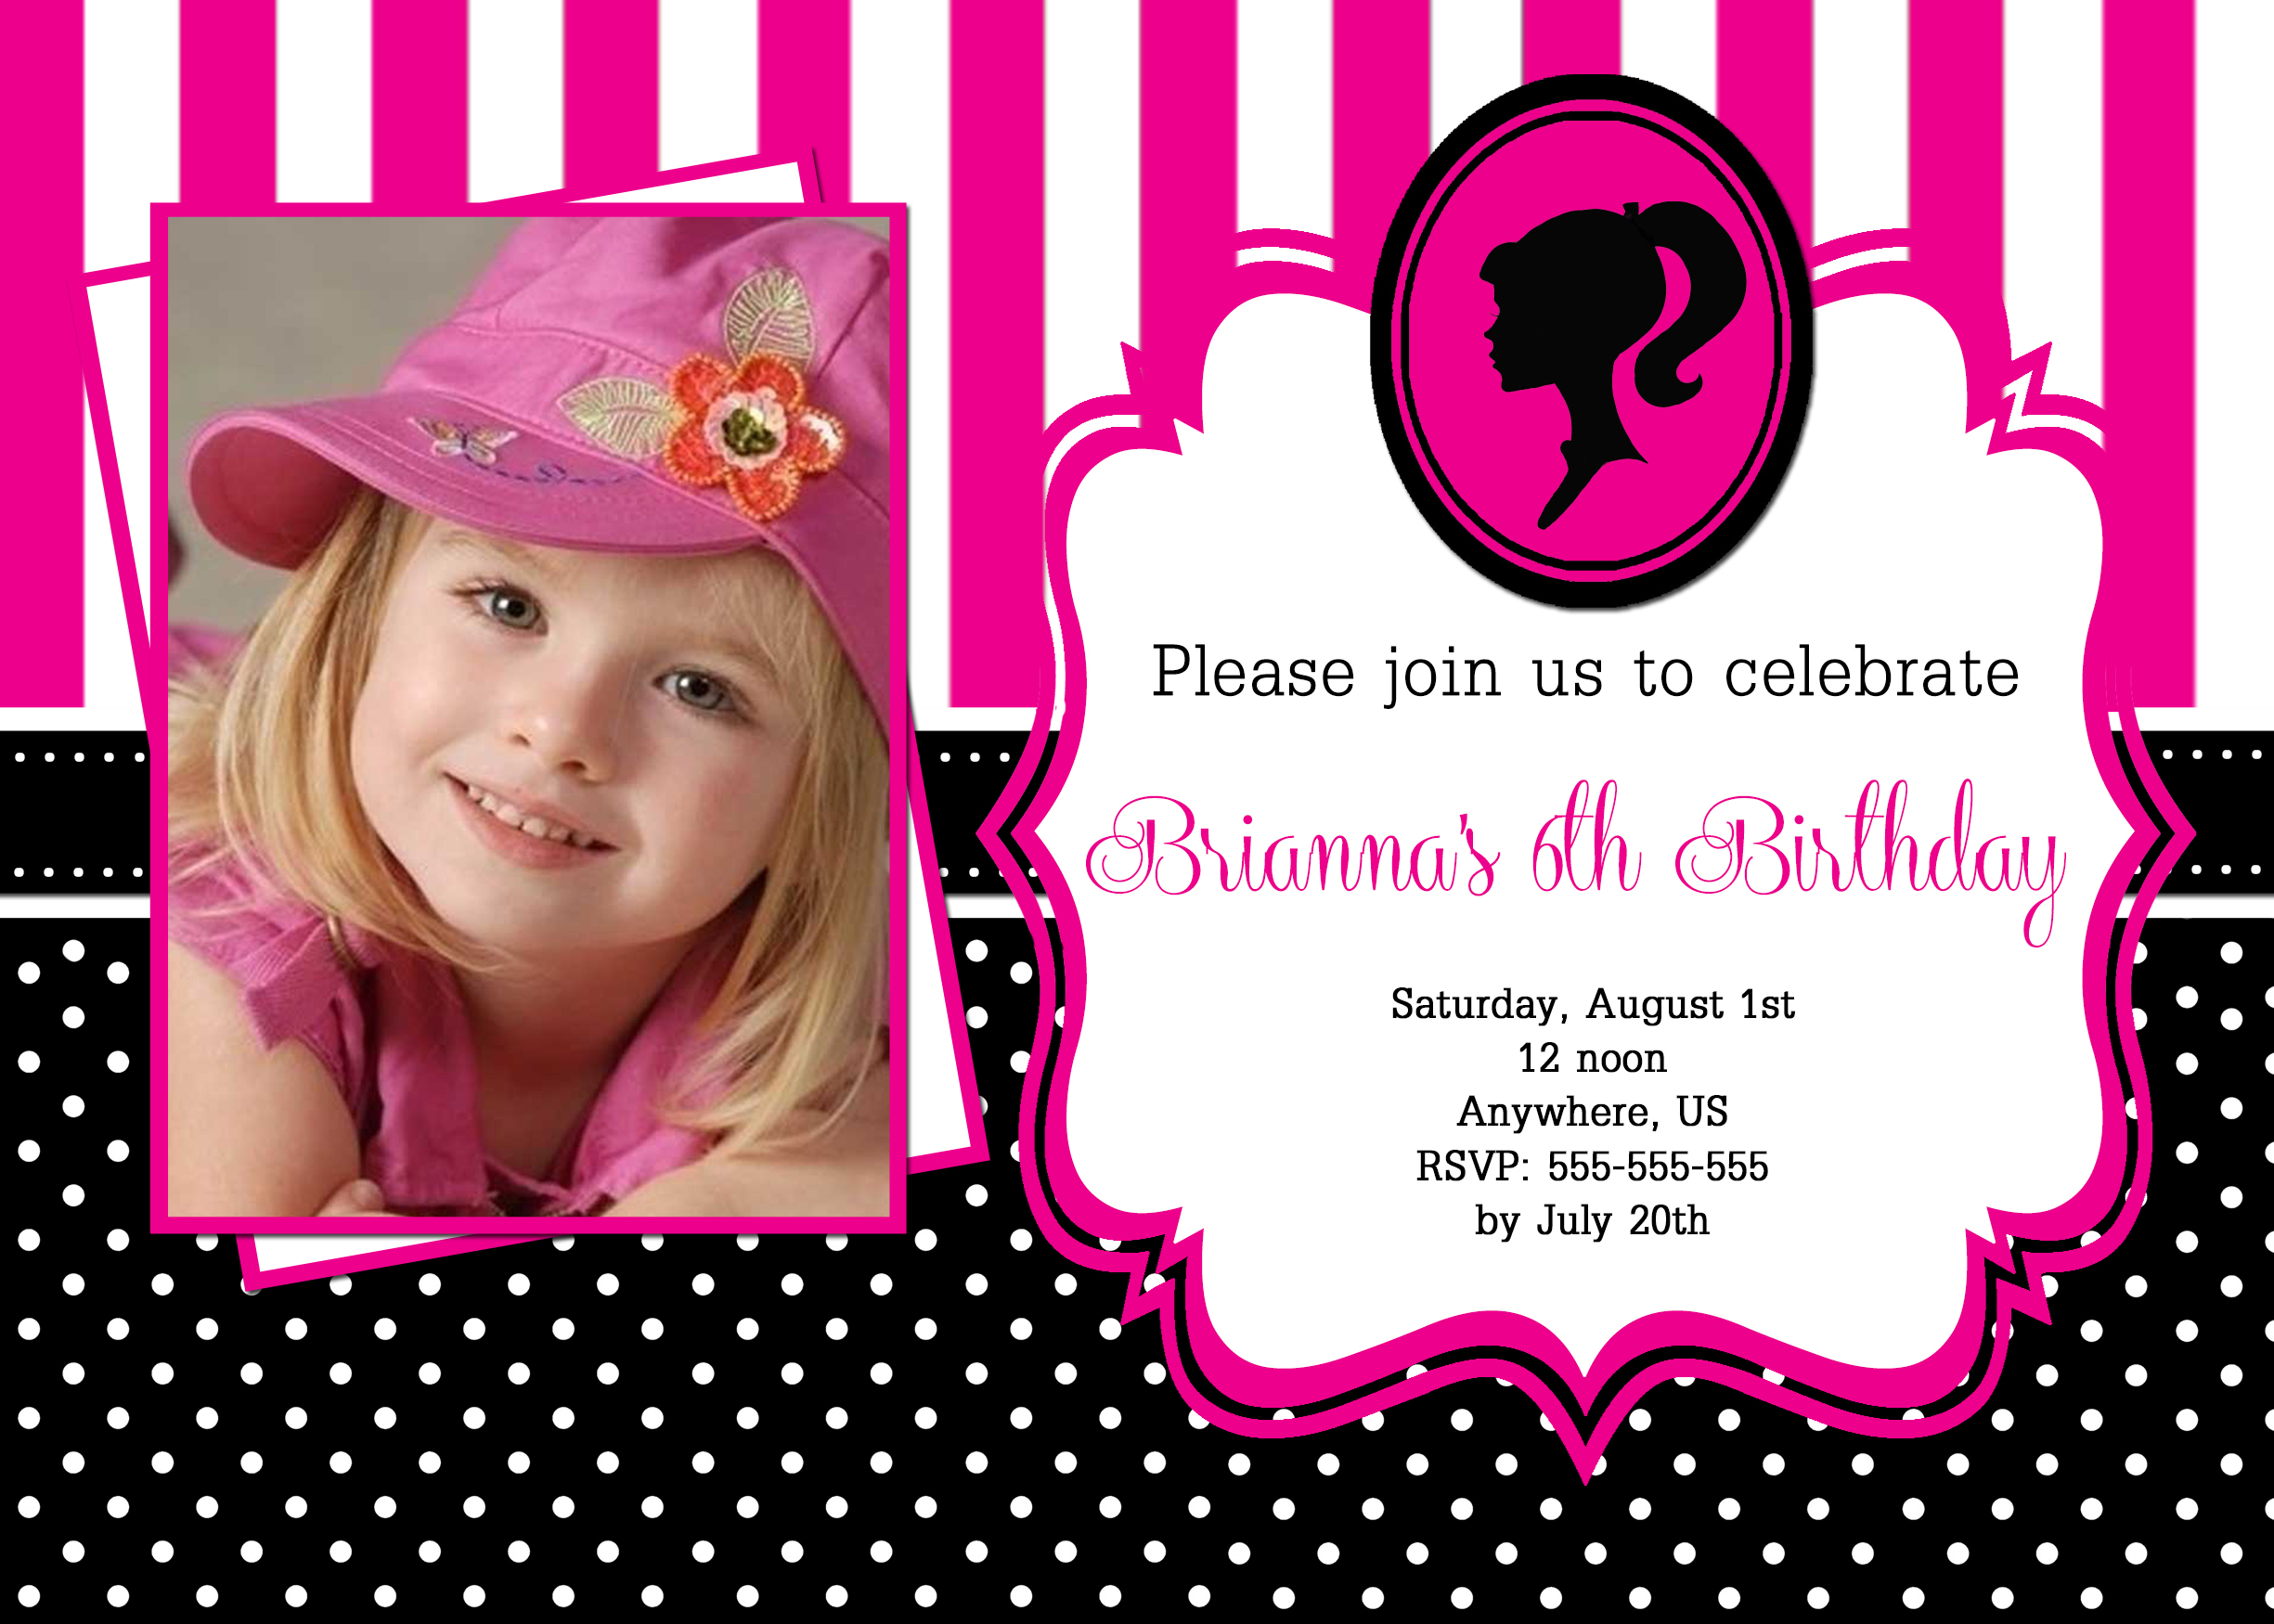 invitation card design for 7th birthday boy ; a680d7100da96c05090458665418a17a